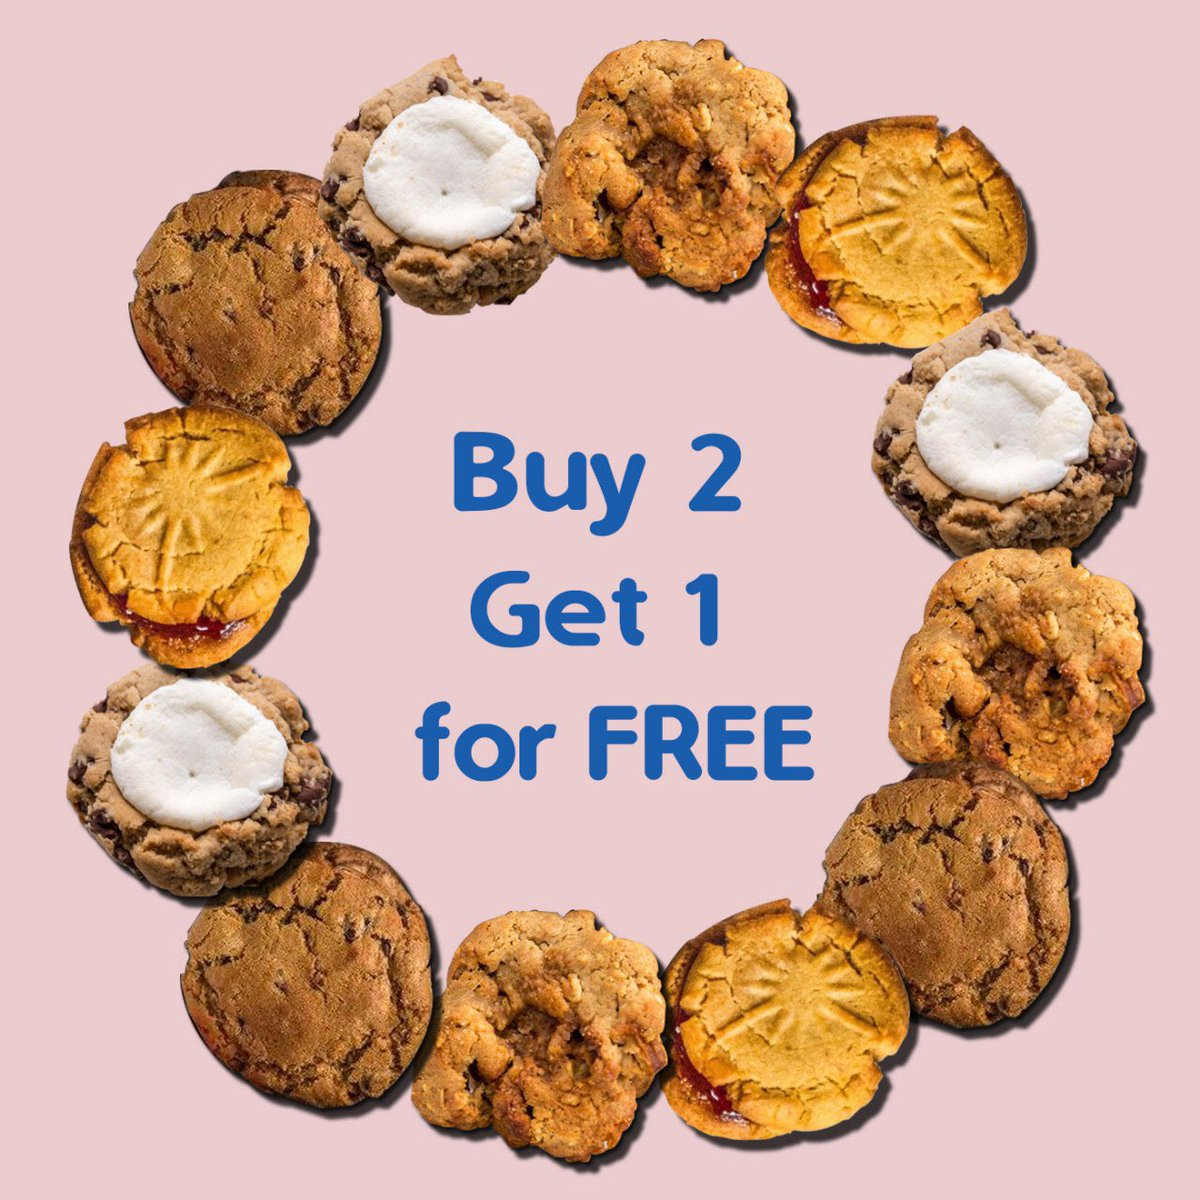 🍪BUY 2 GET 1 FOR FREE🍪  🍪😋That's right, fresh cookies from @littleredkitchen arrived in our store, baked with mostly organic, fair trade or non-GMO ingredients for a treat that's wholesome and delicious😋🍪  #littleredkitchen #clubcandyatl #downtownatl #whyiloveatl #atlanta https://t.co/ESvHSZKcCM